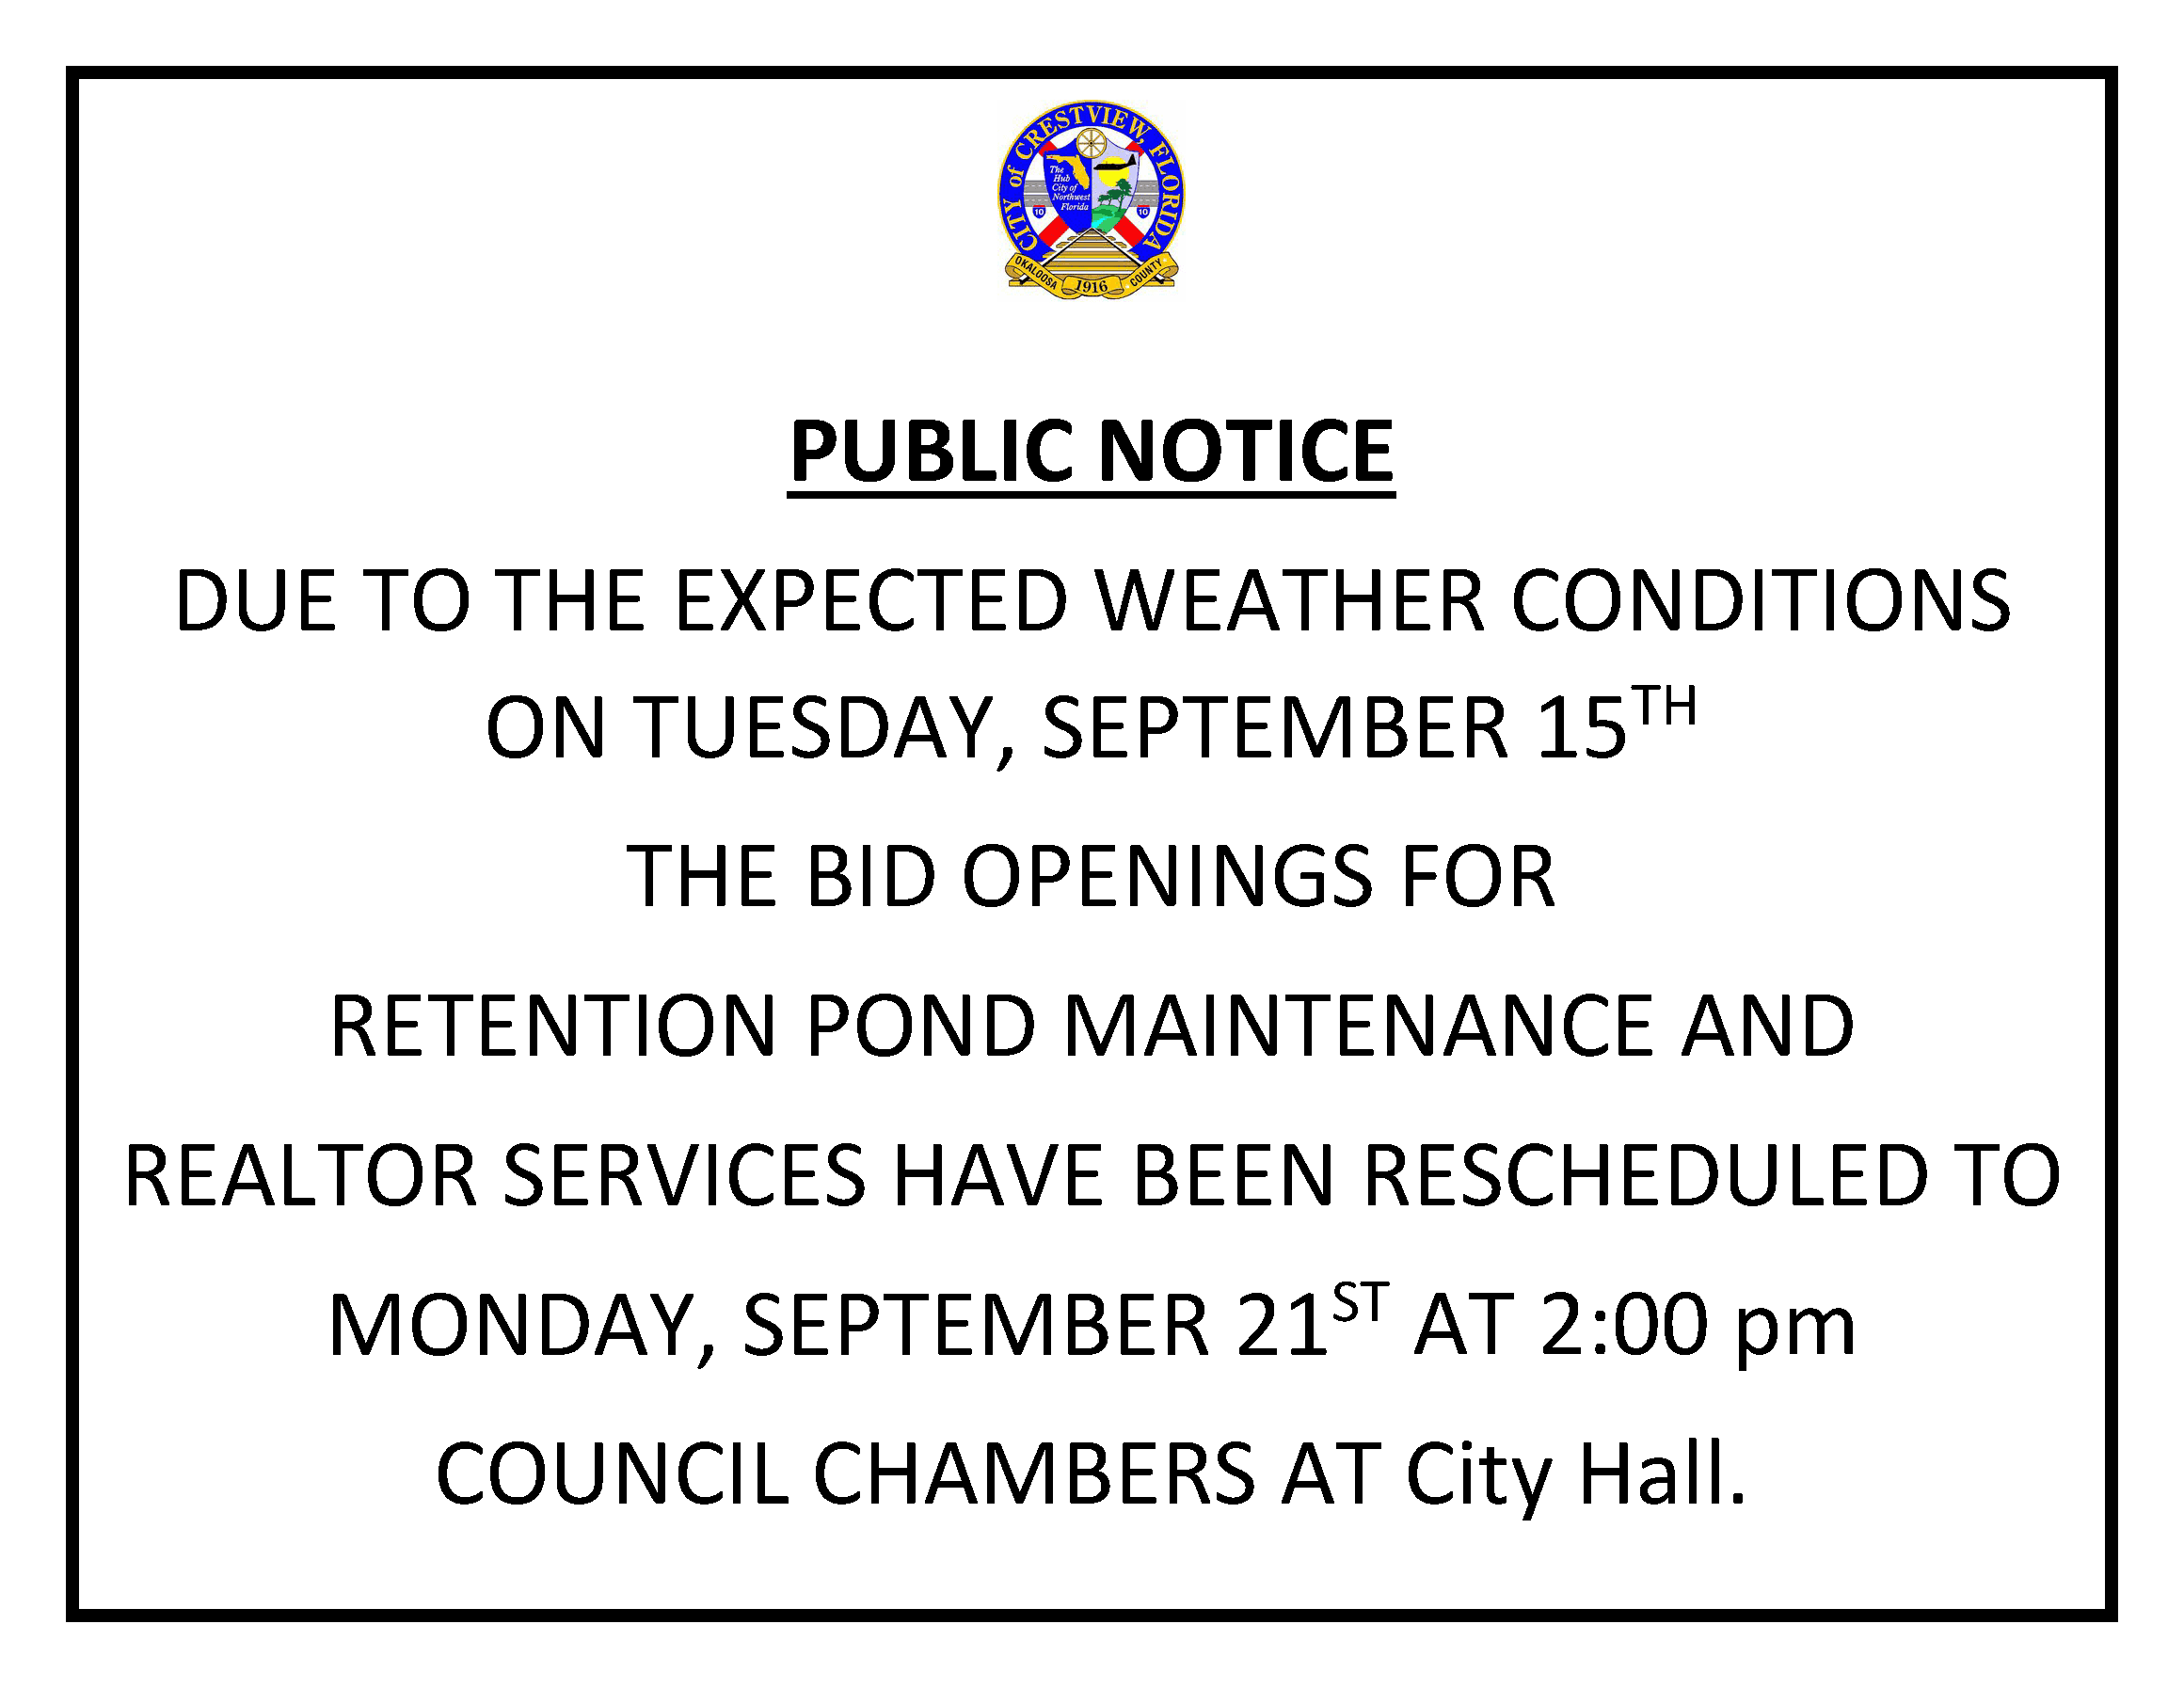 bid opening for 9/15 postponed to 9/21 2:00 PM